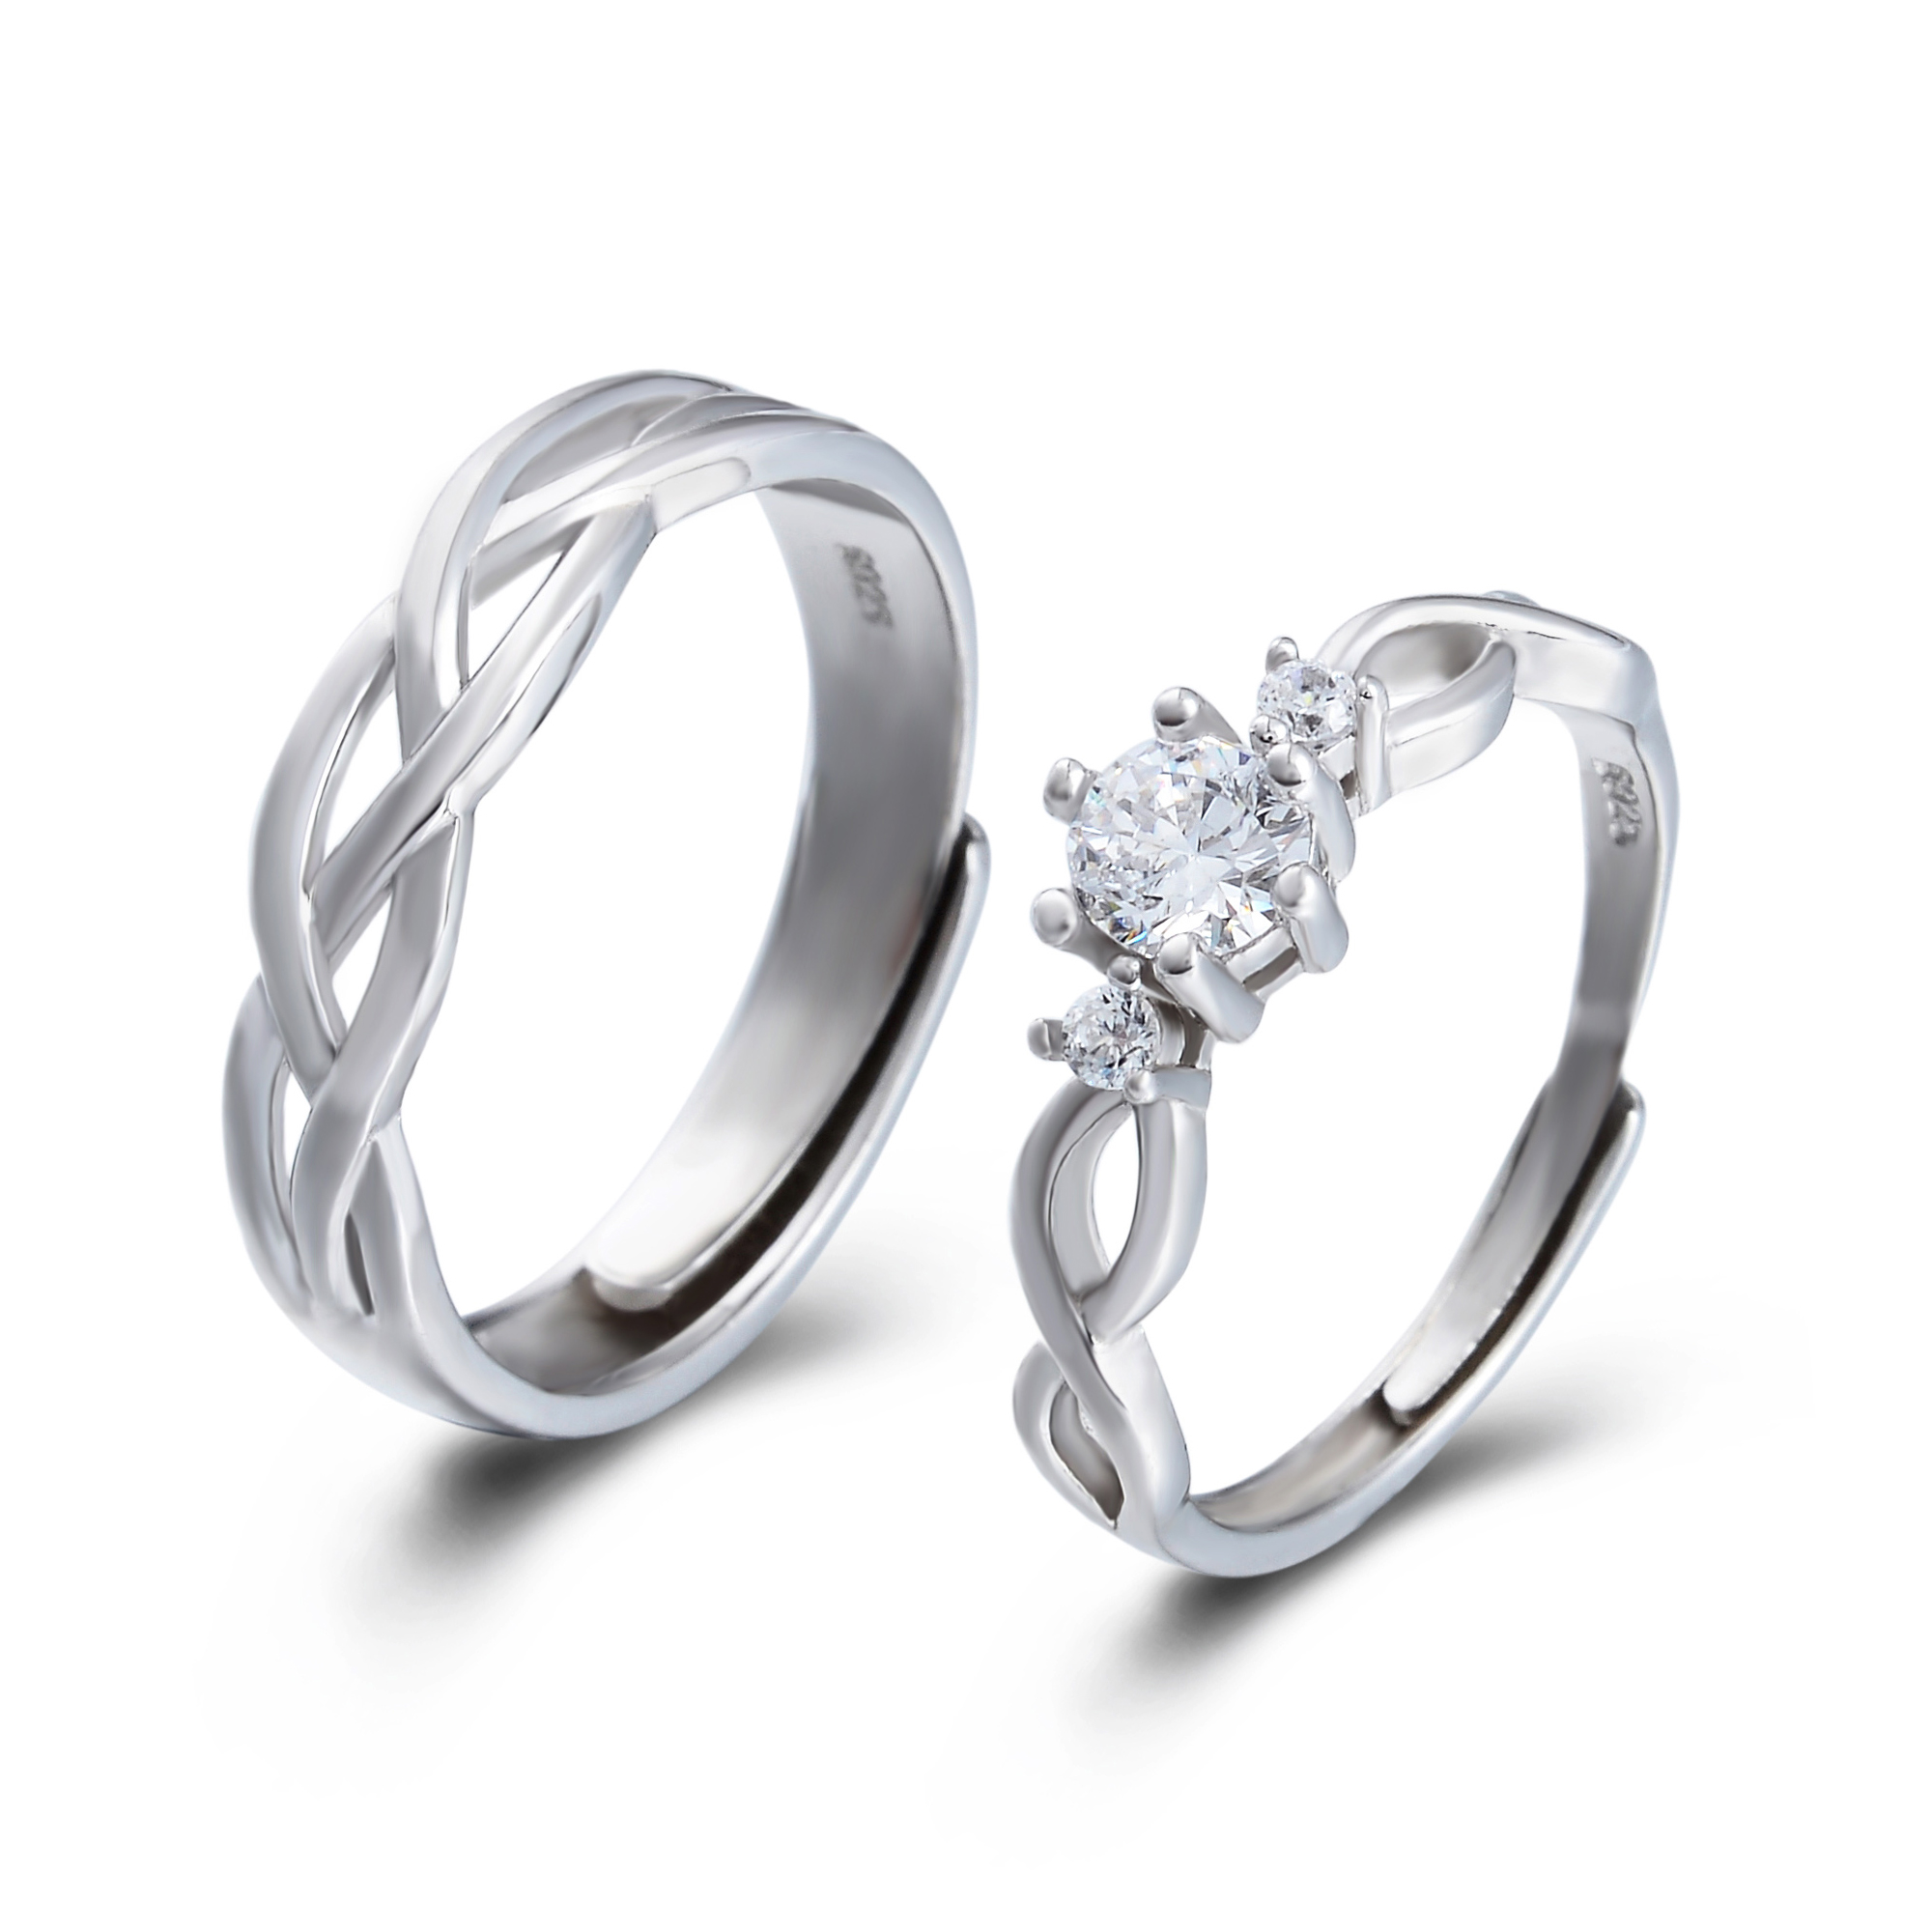 This is a picture of Vintage Wedding Band Couples Ring Set Simple Hollow Weaved Braided